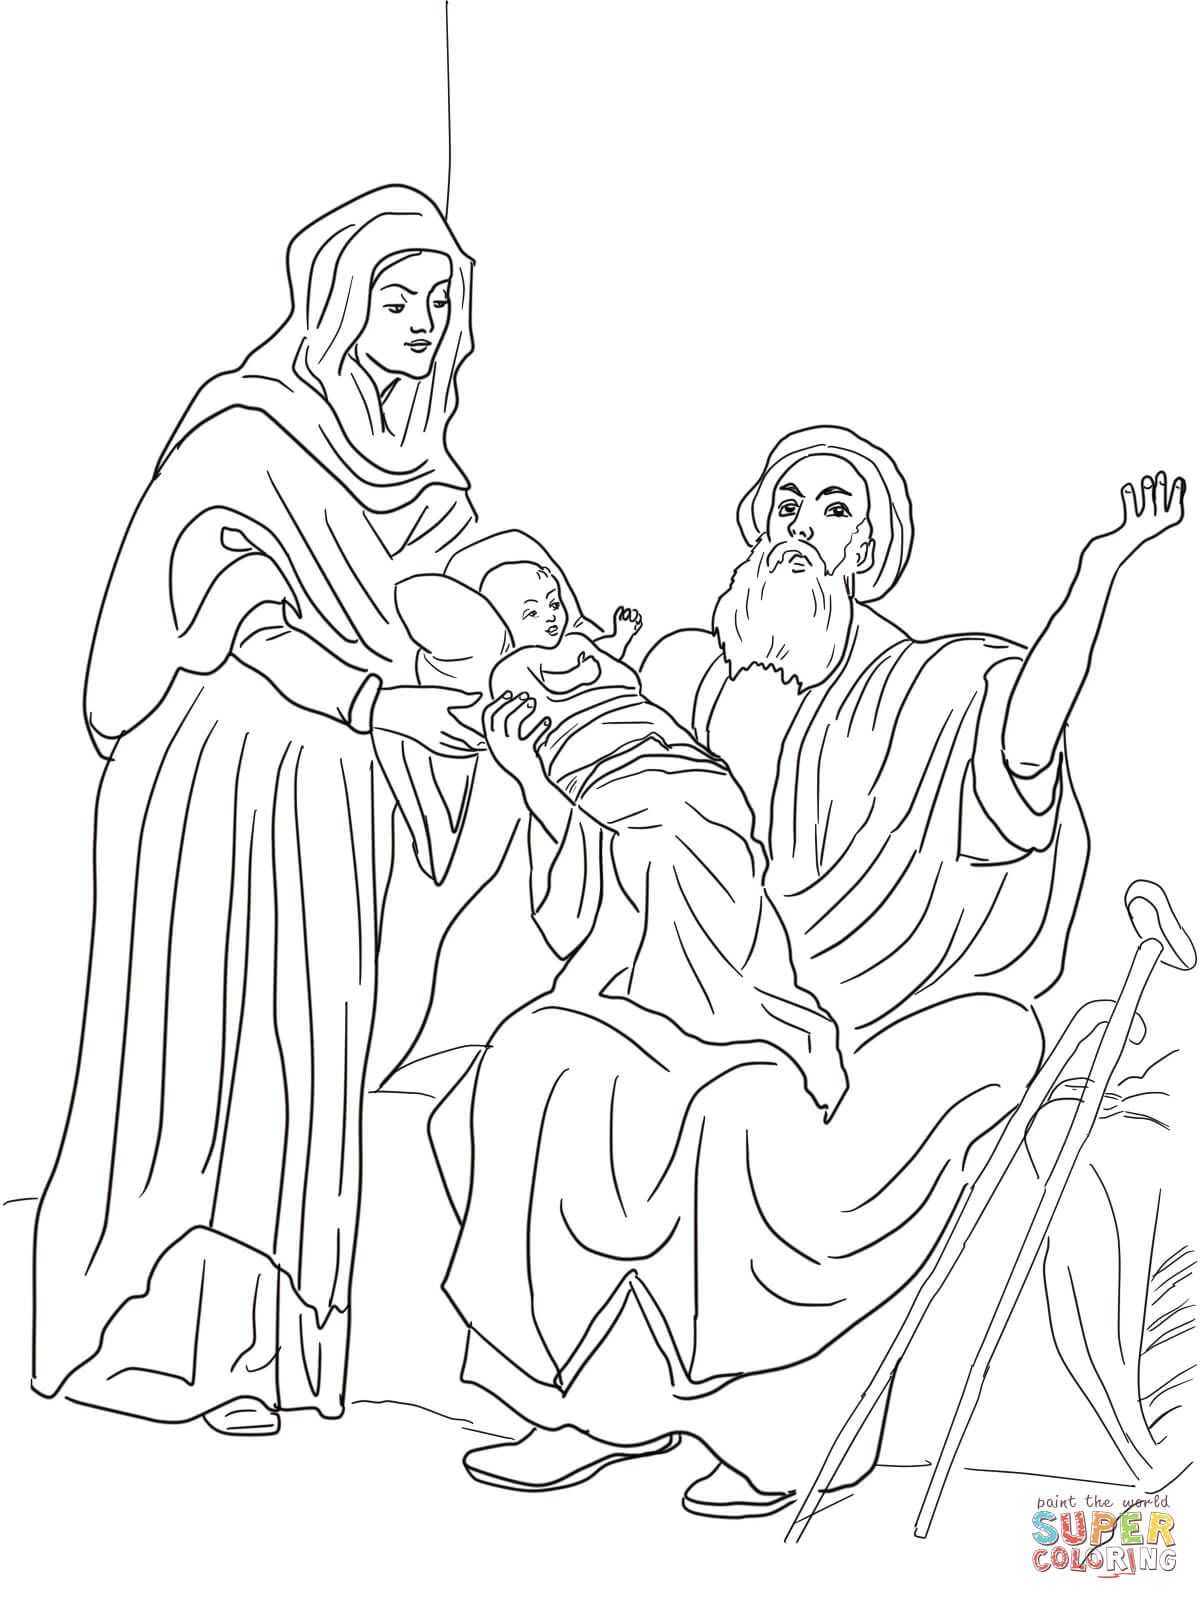 Baby Jesus in Temple Coloring Page, jesus at the temple coloring